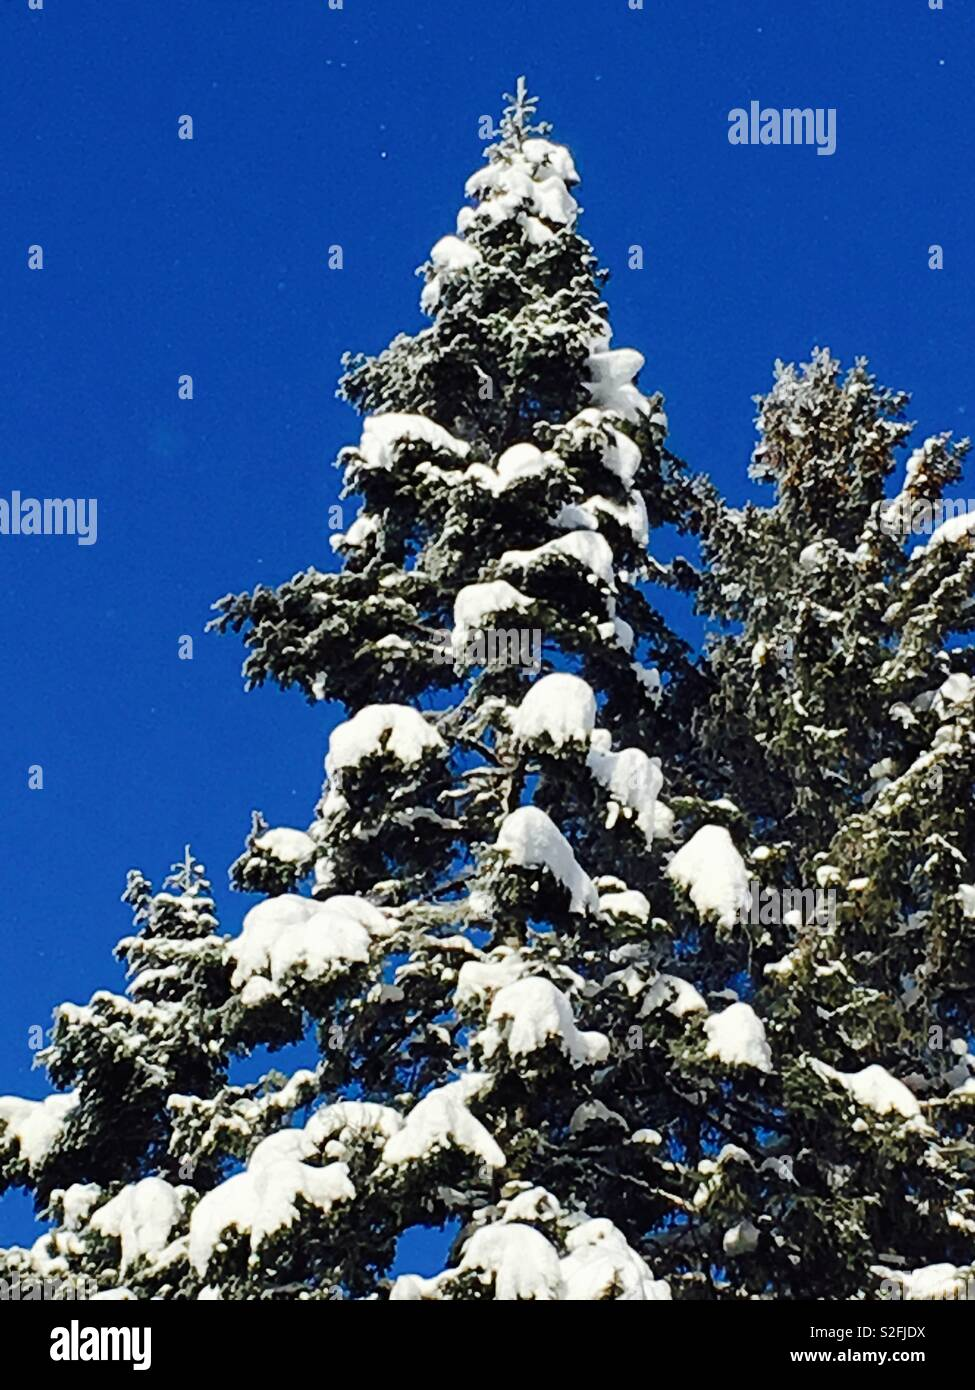 Conifers covered in snow Stock Photo